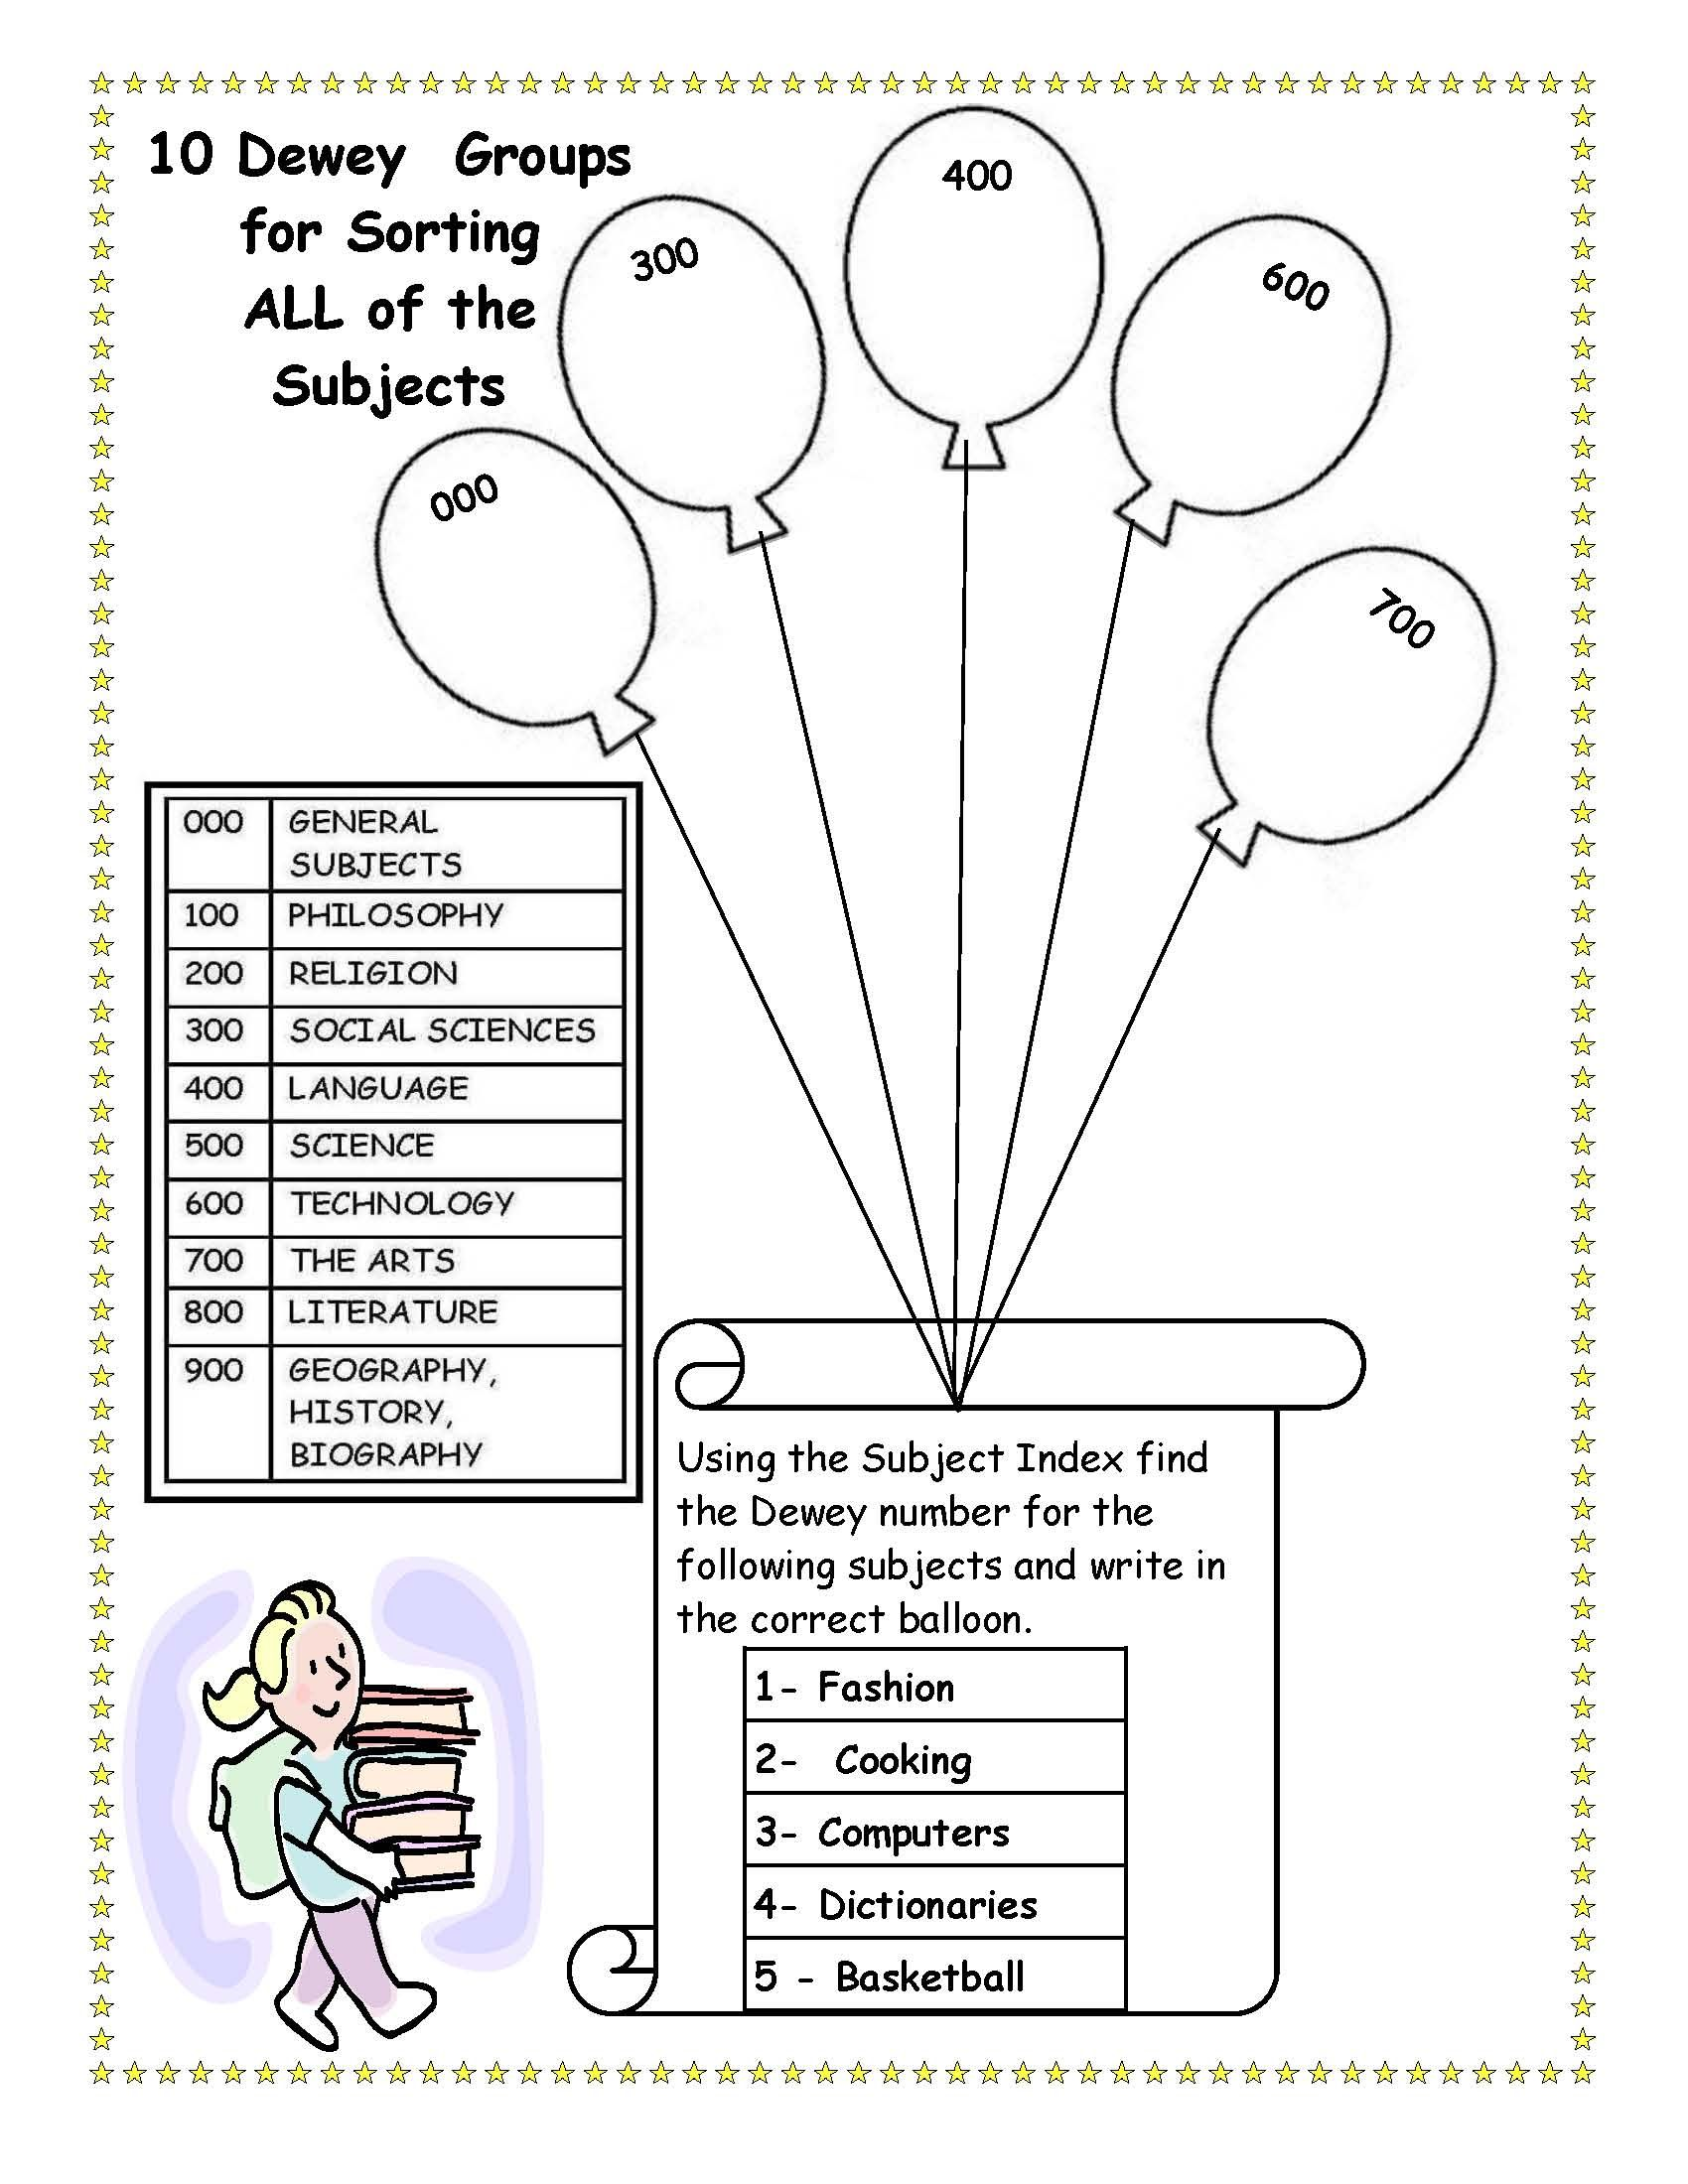 Cute To Bad I Killed Dewey Library Skills Worksheet Library Skills Elementary Librarian Library Lesson Plans